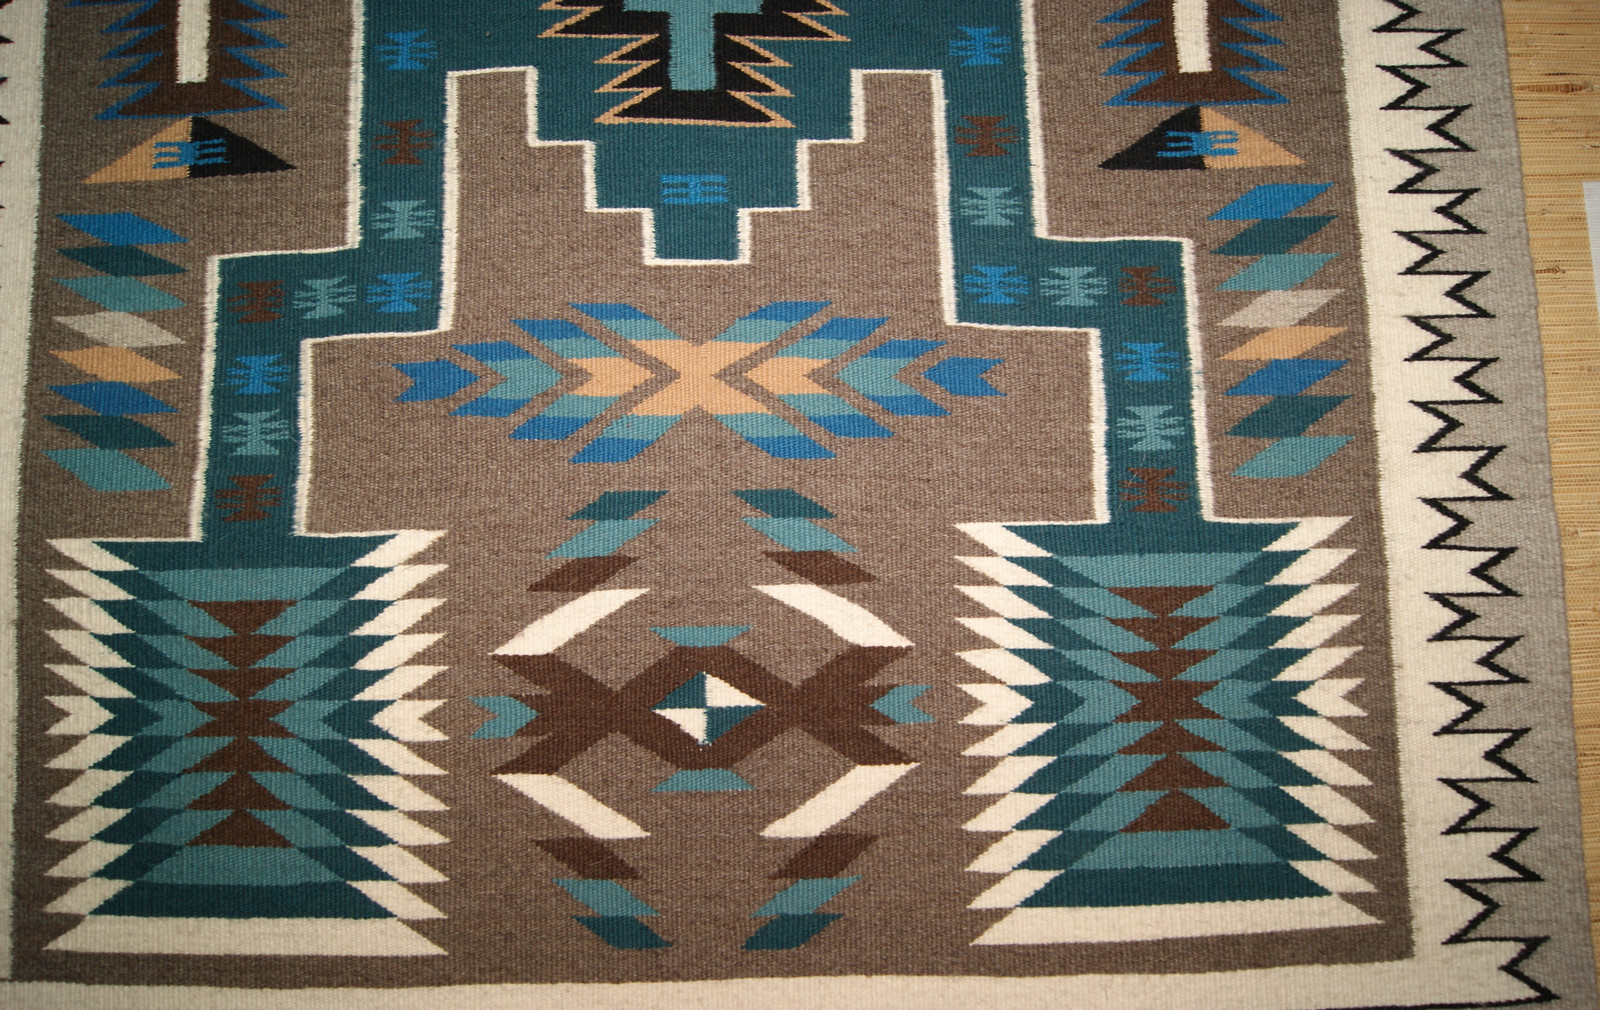 Index of /assets/images/storm-pattern-navajo-rugs